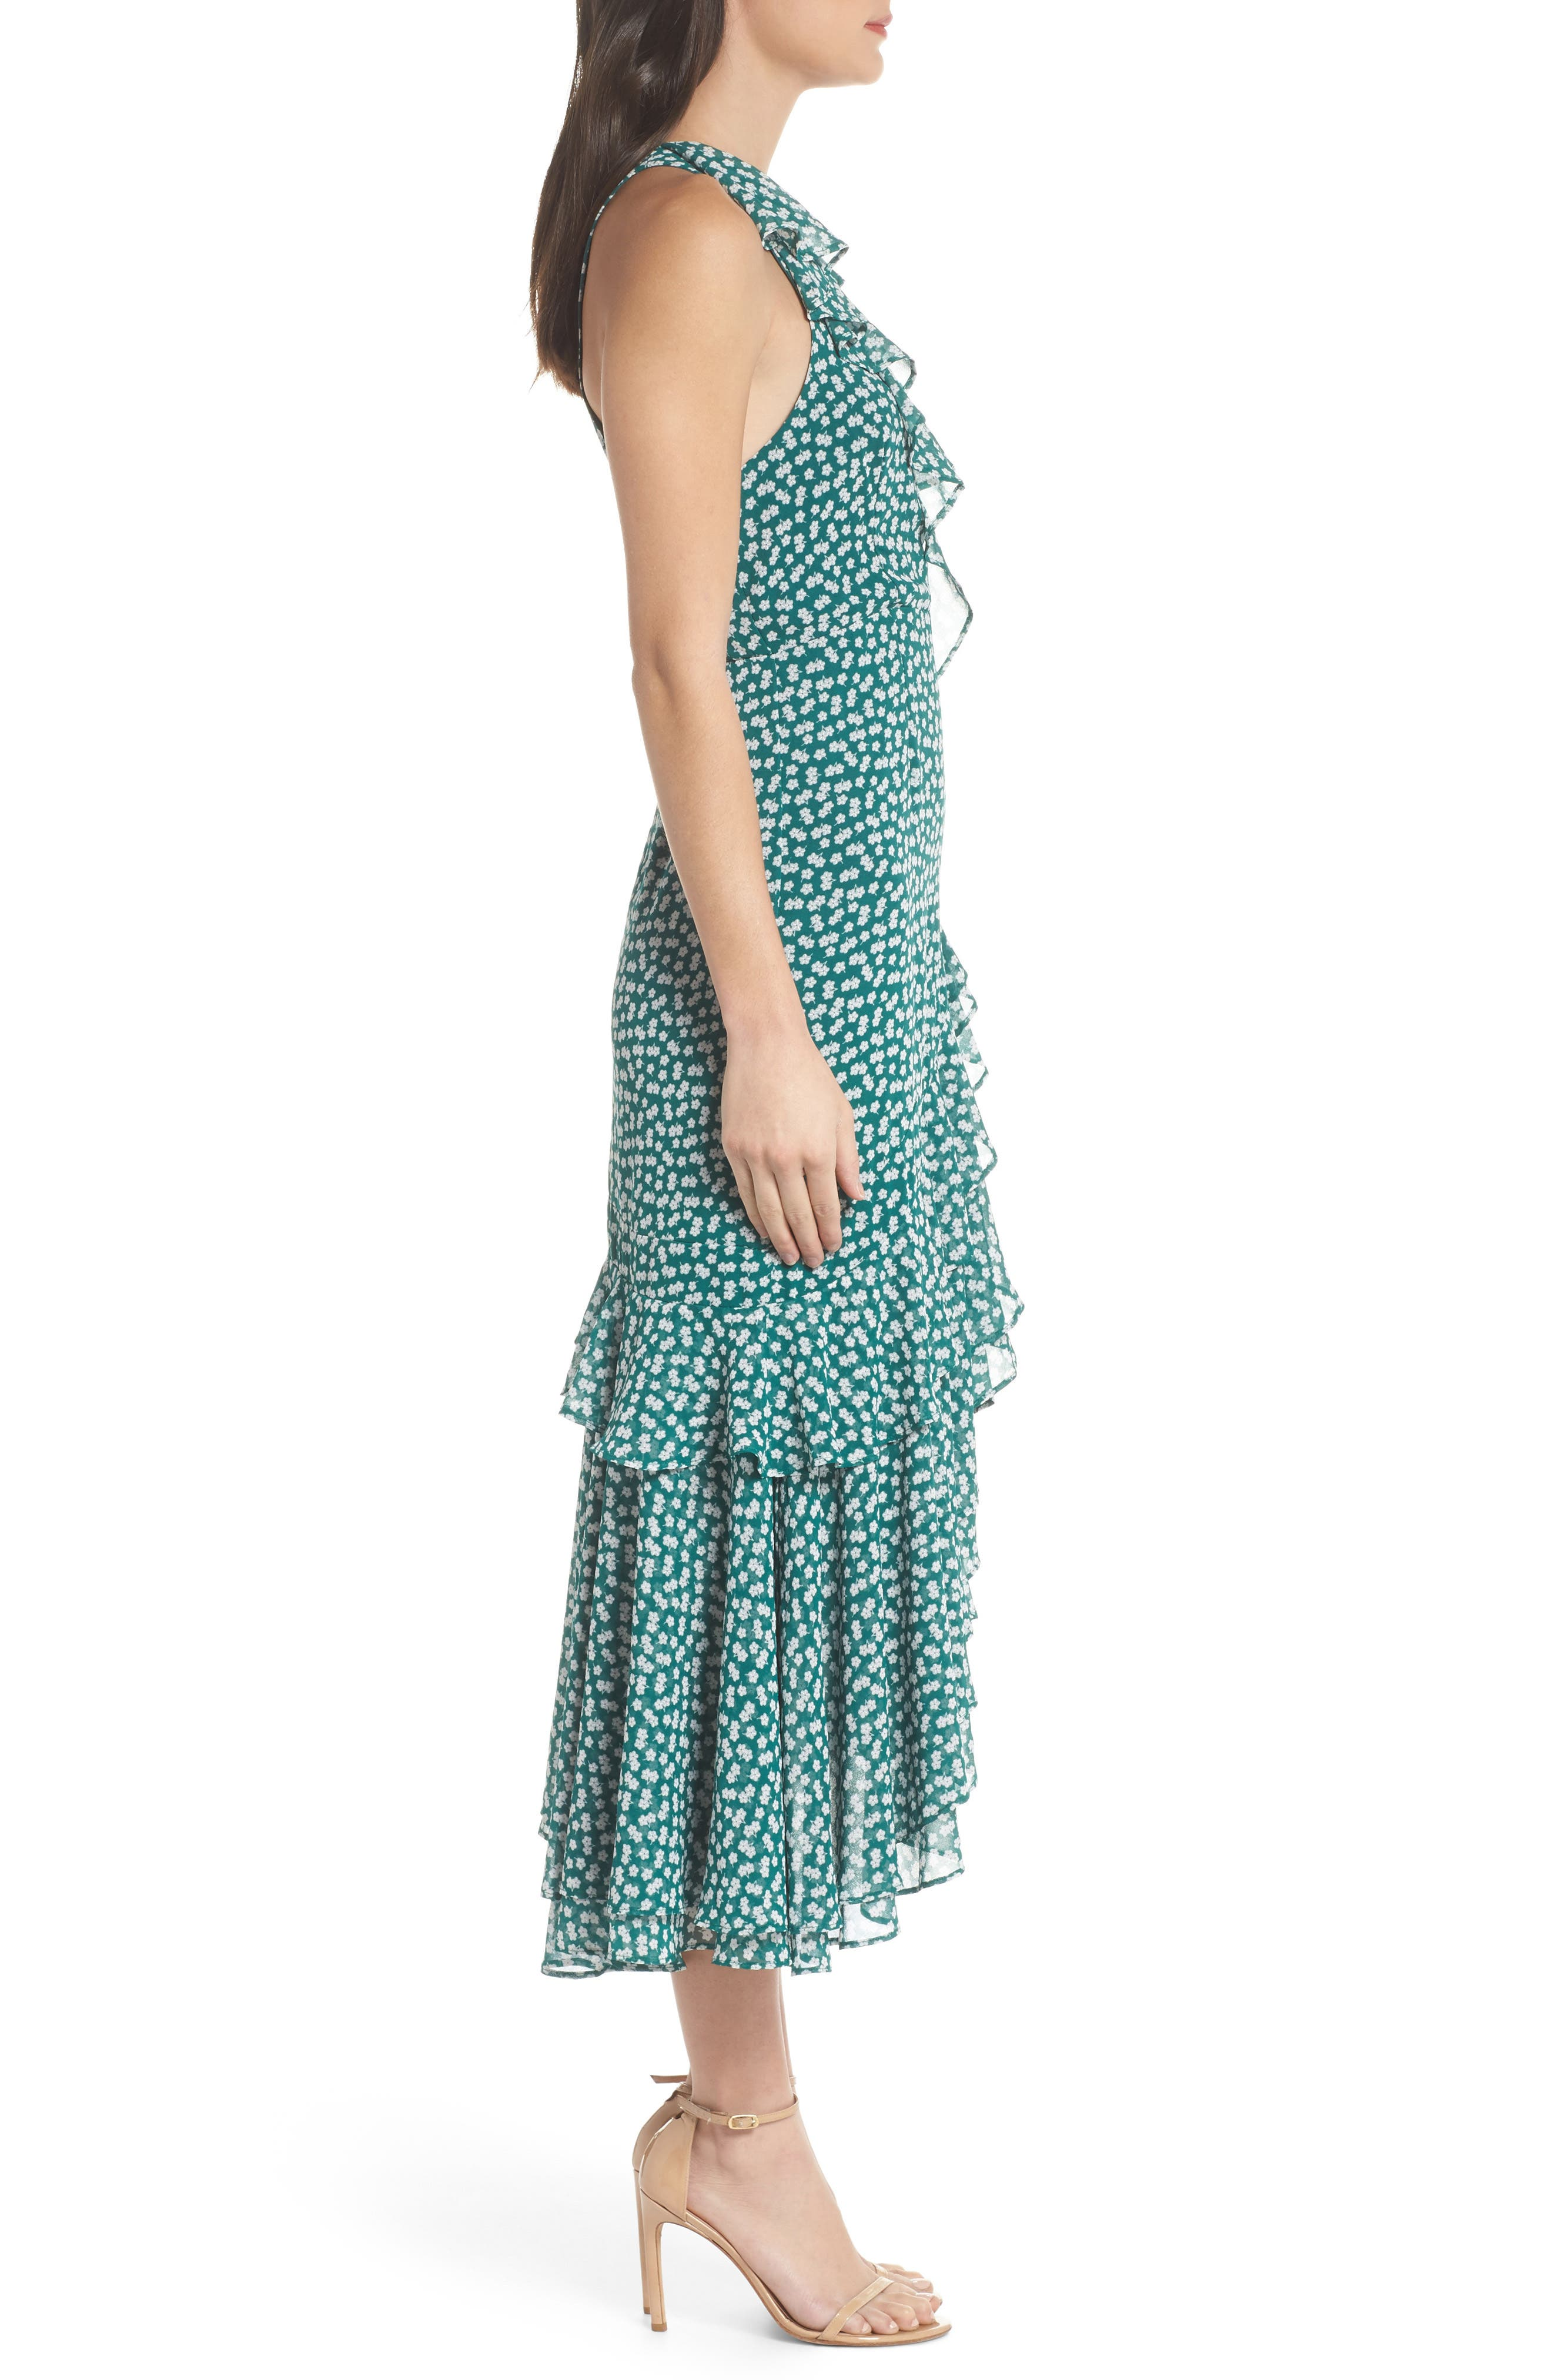 Be About You Ruffle Midi Dress,                             Alternate thumbnail 3, color,                             Green Daisy